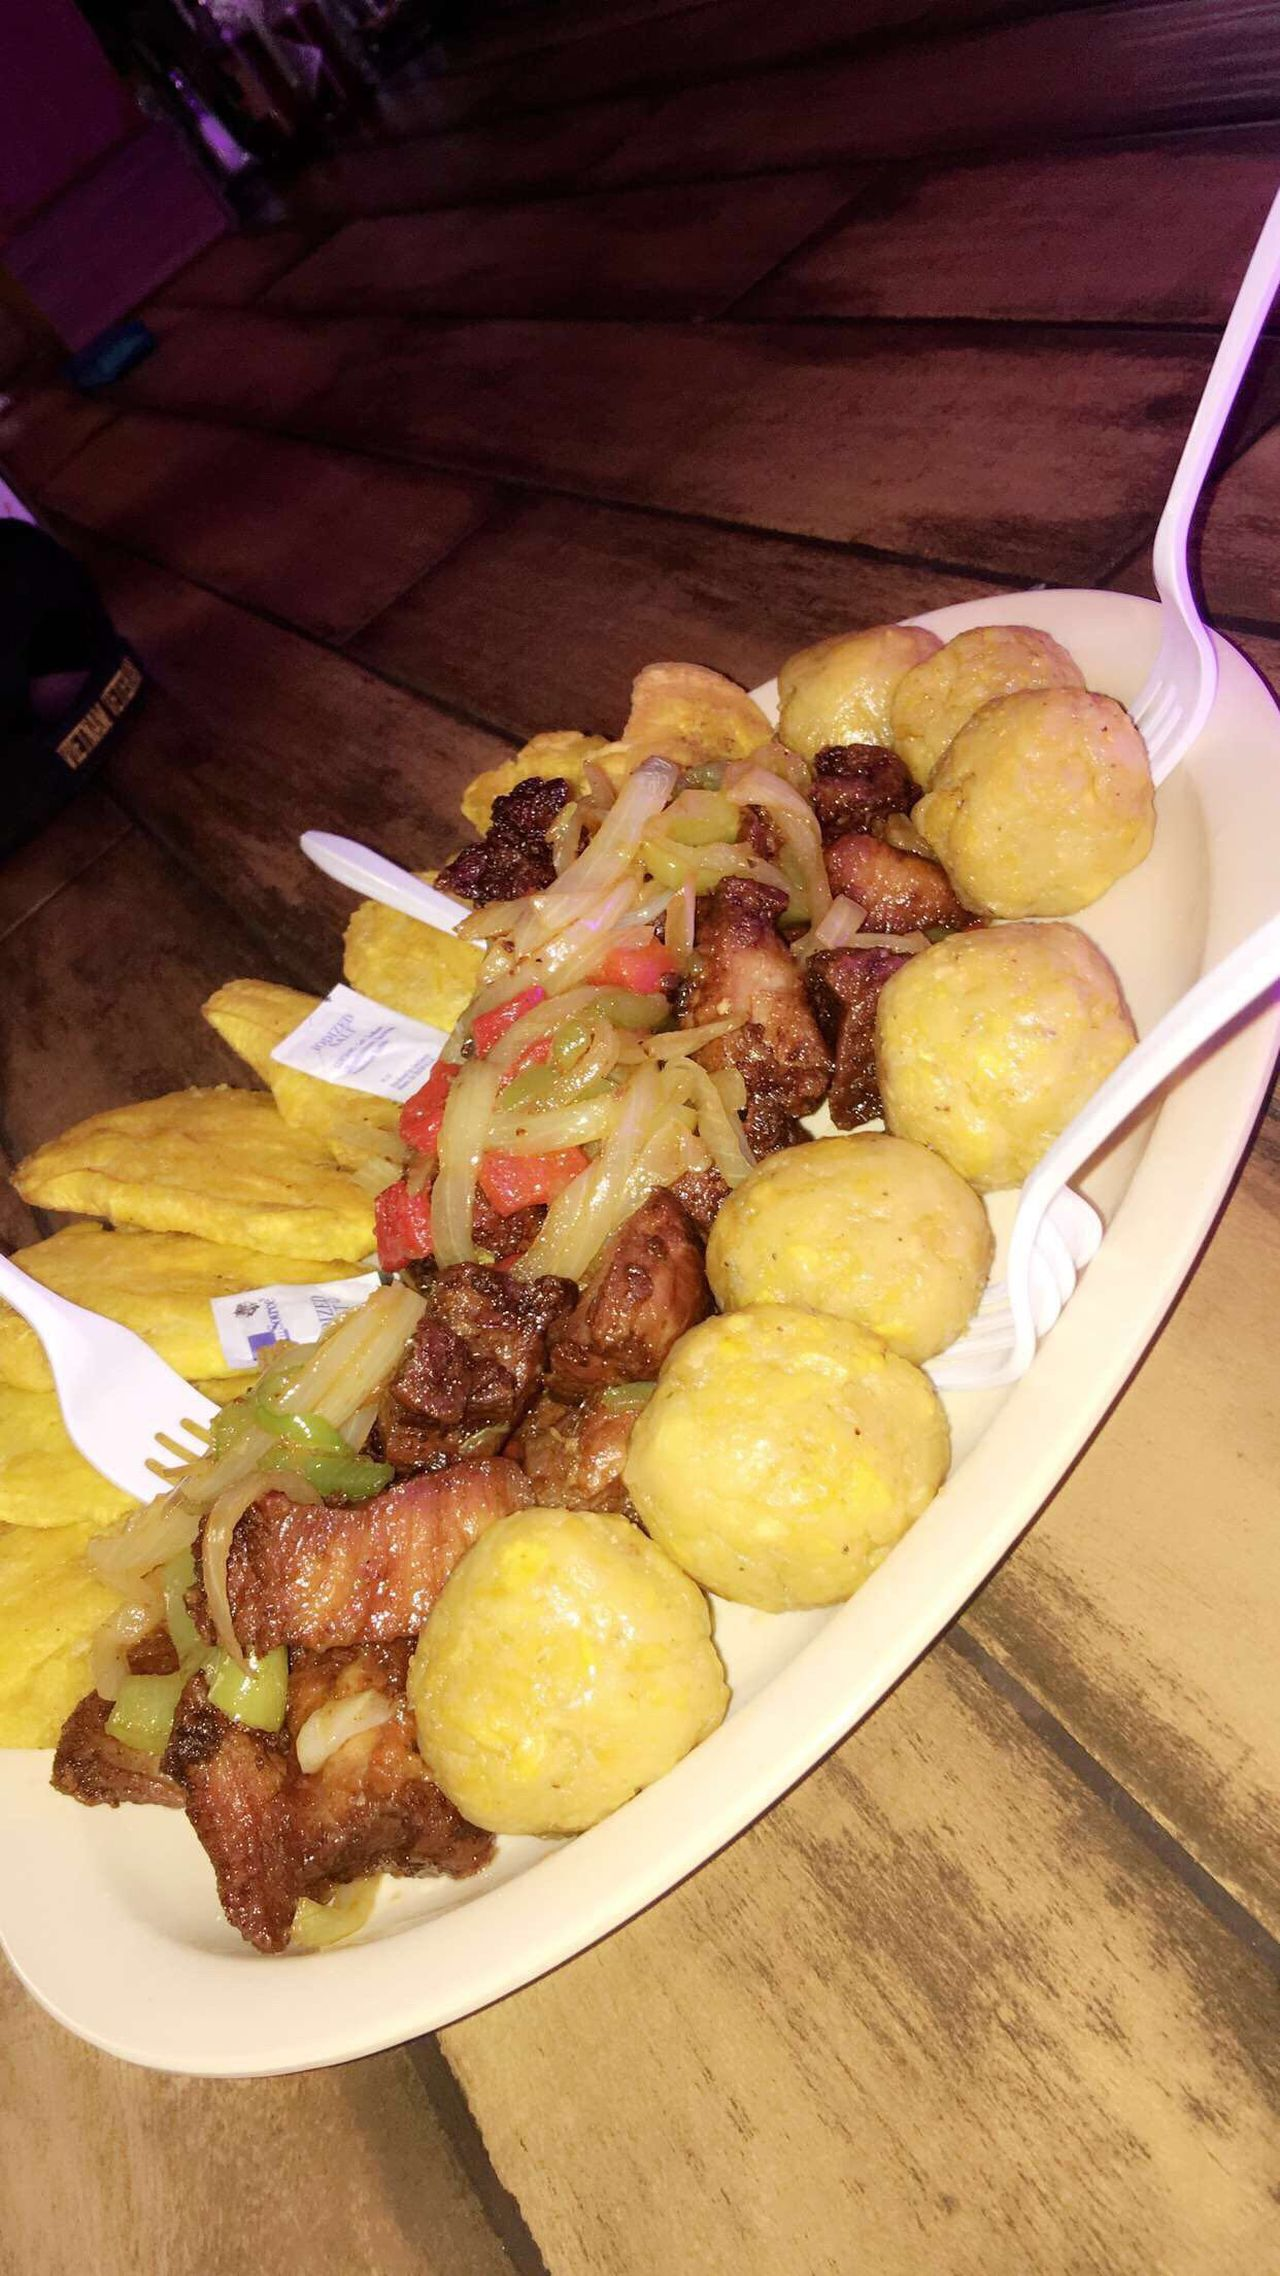 Visual Feast Carne Frita con Bolitas de Mofongo Food And Drink Food Table Prepared Potato Ready-to-eat Indoors  Plate Meat Freshness No People Meal Healthy Eating Close-up Minced Day Carnefrita Mofongo PR